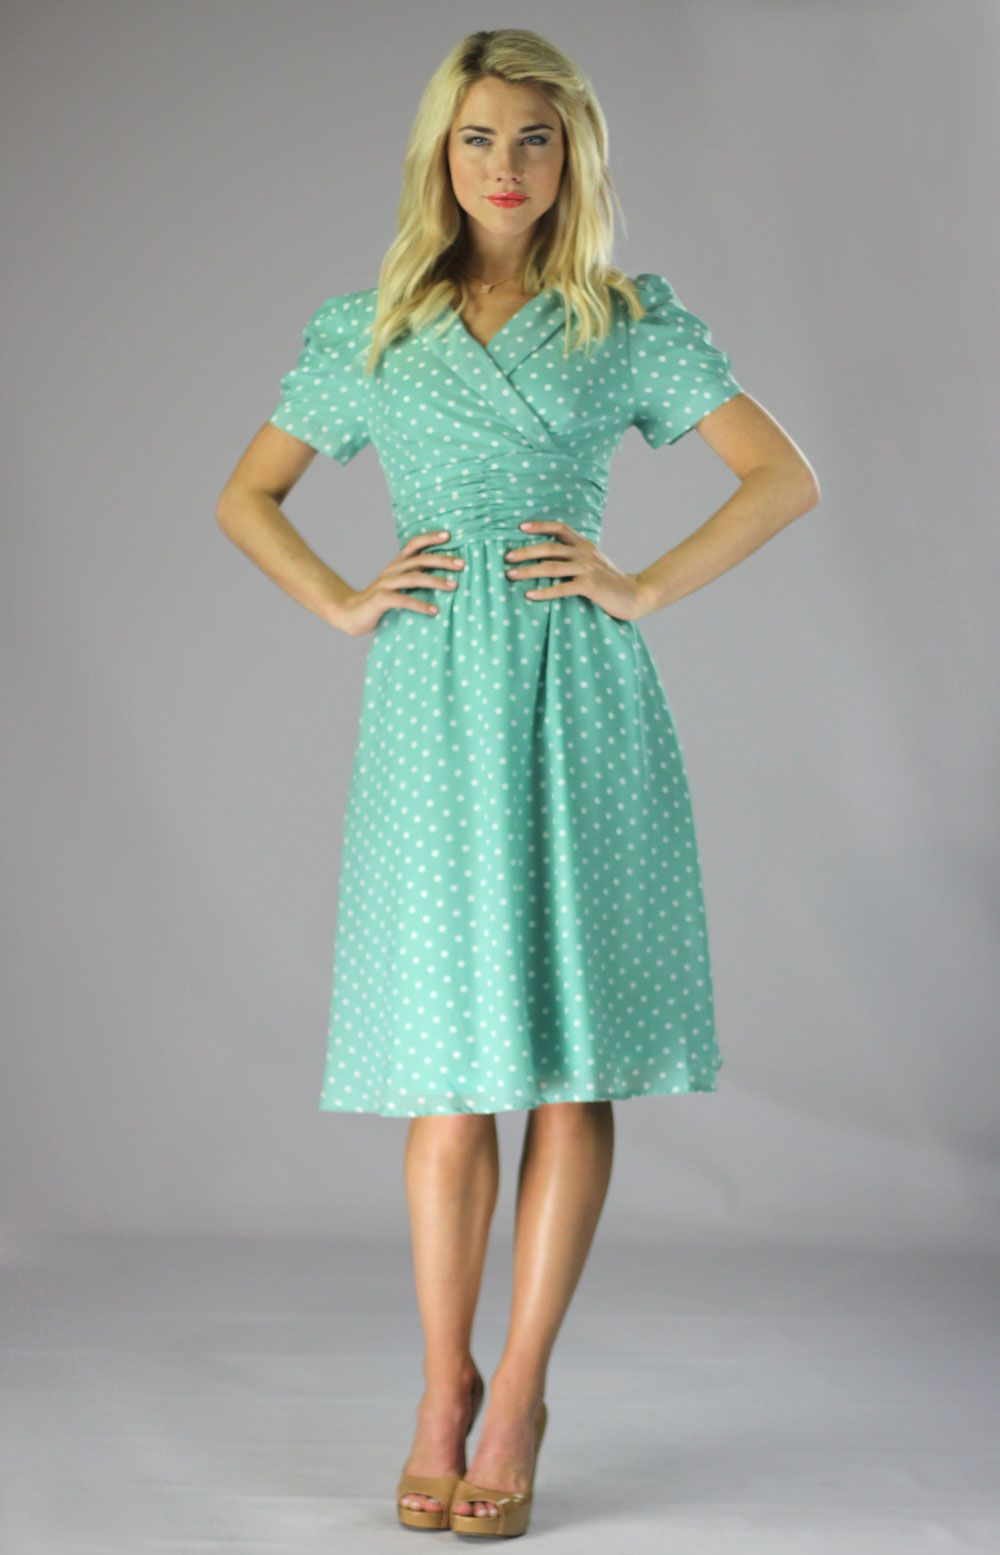 b4d700e4703f Cute vintage modest dress in mint polka-dot! $59.99 Found it! Everything on  this site is cute and modest!